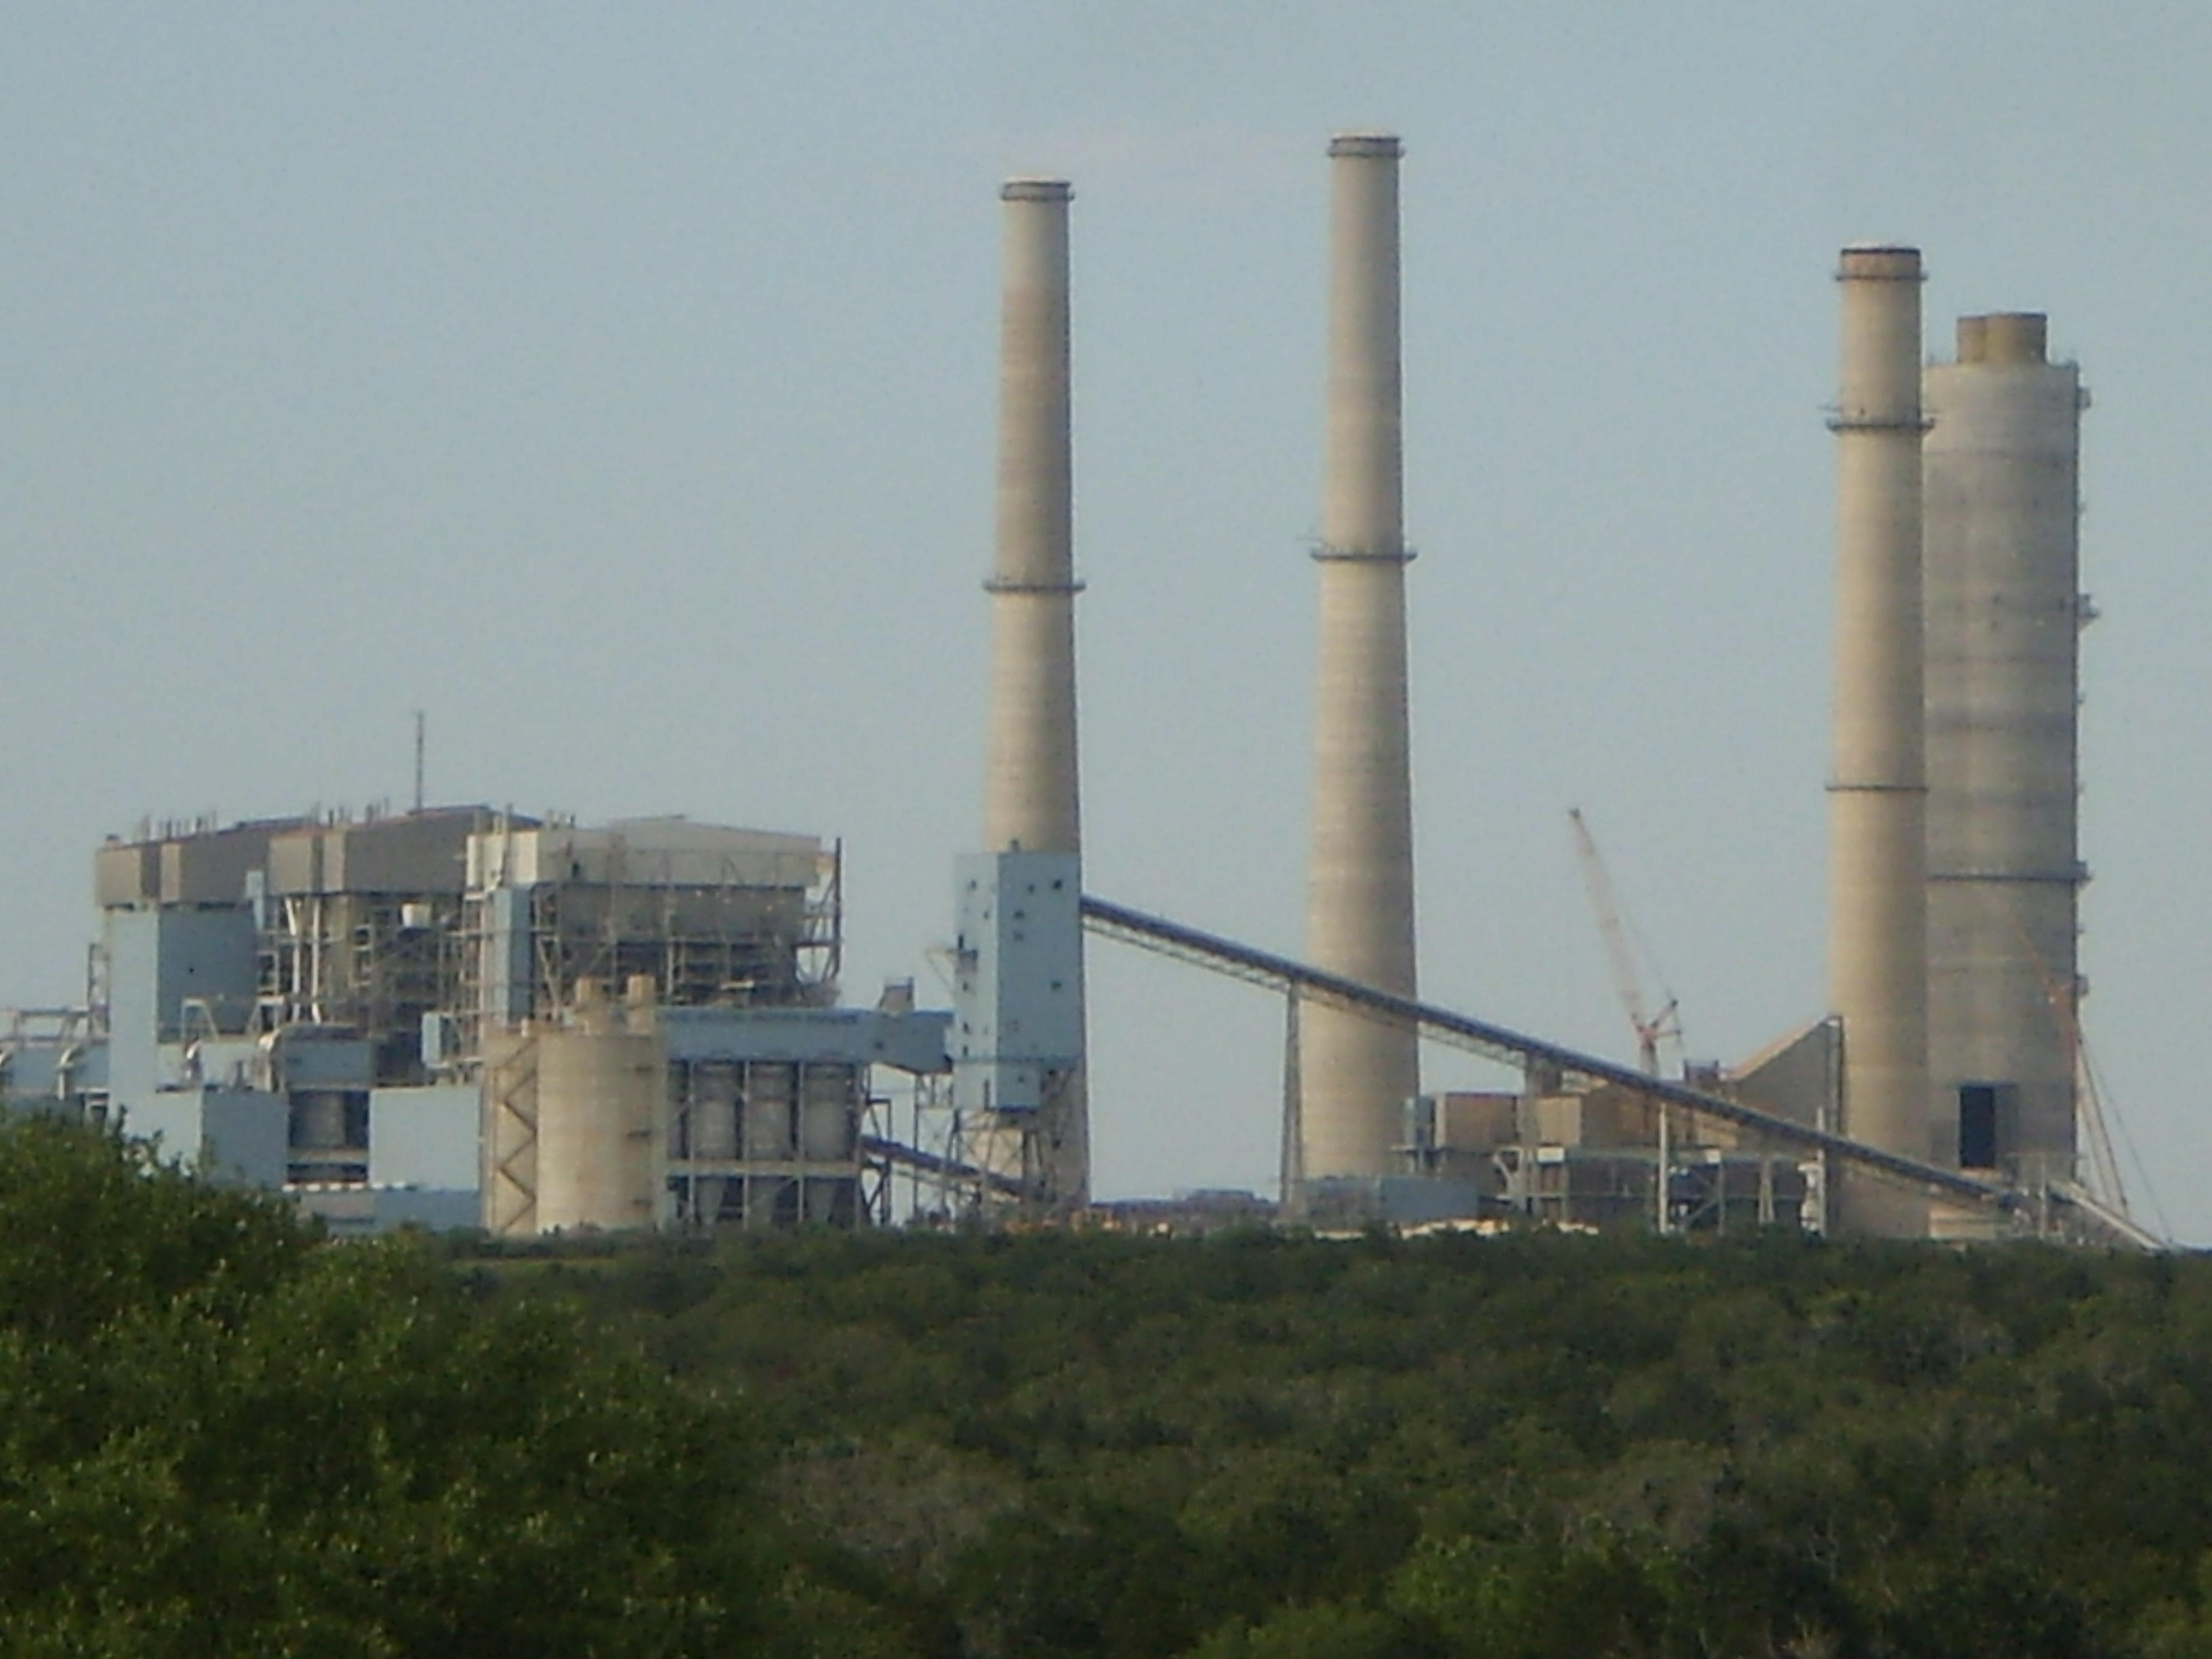 If Austin Goes Coal-Free, Could the Rest of Texas Follow ...